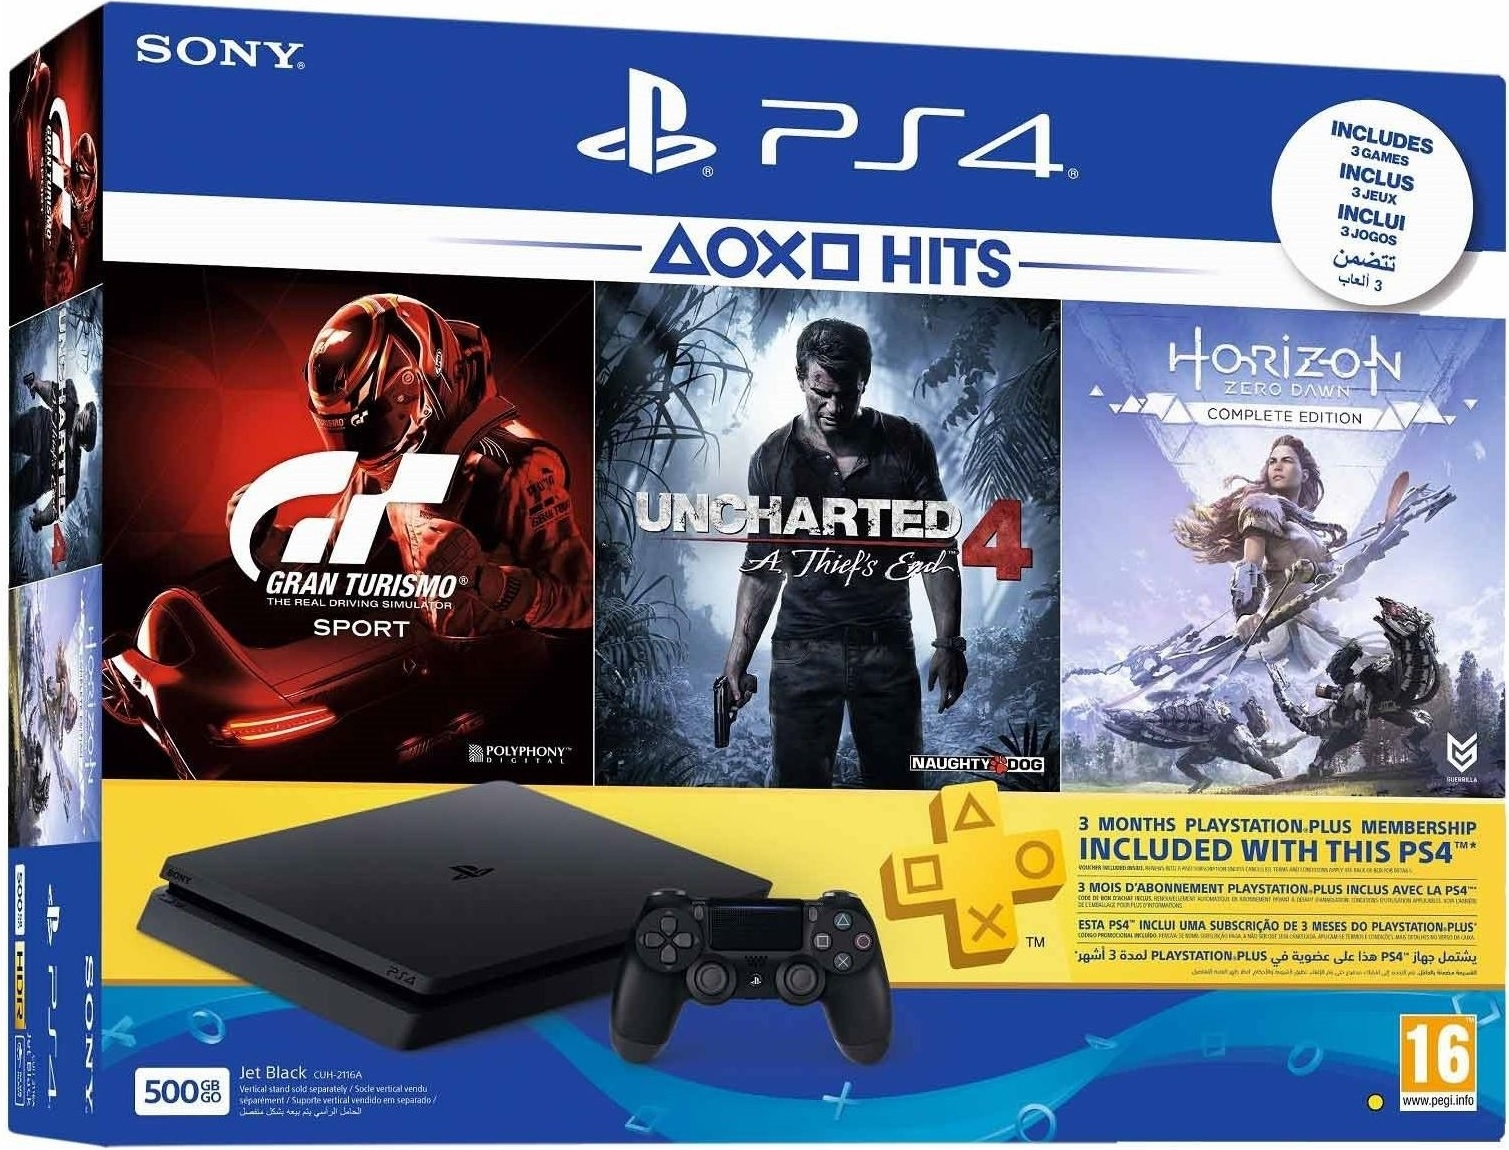 Sony PlayStation 4 Slim 1TB Playstation HITS Horizon Zero Dawn +Gran Turismo Sport + Uncharted 4 Bundle